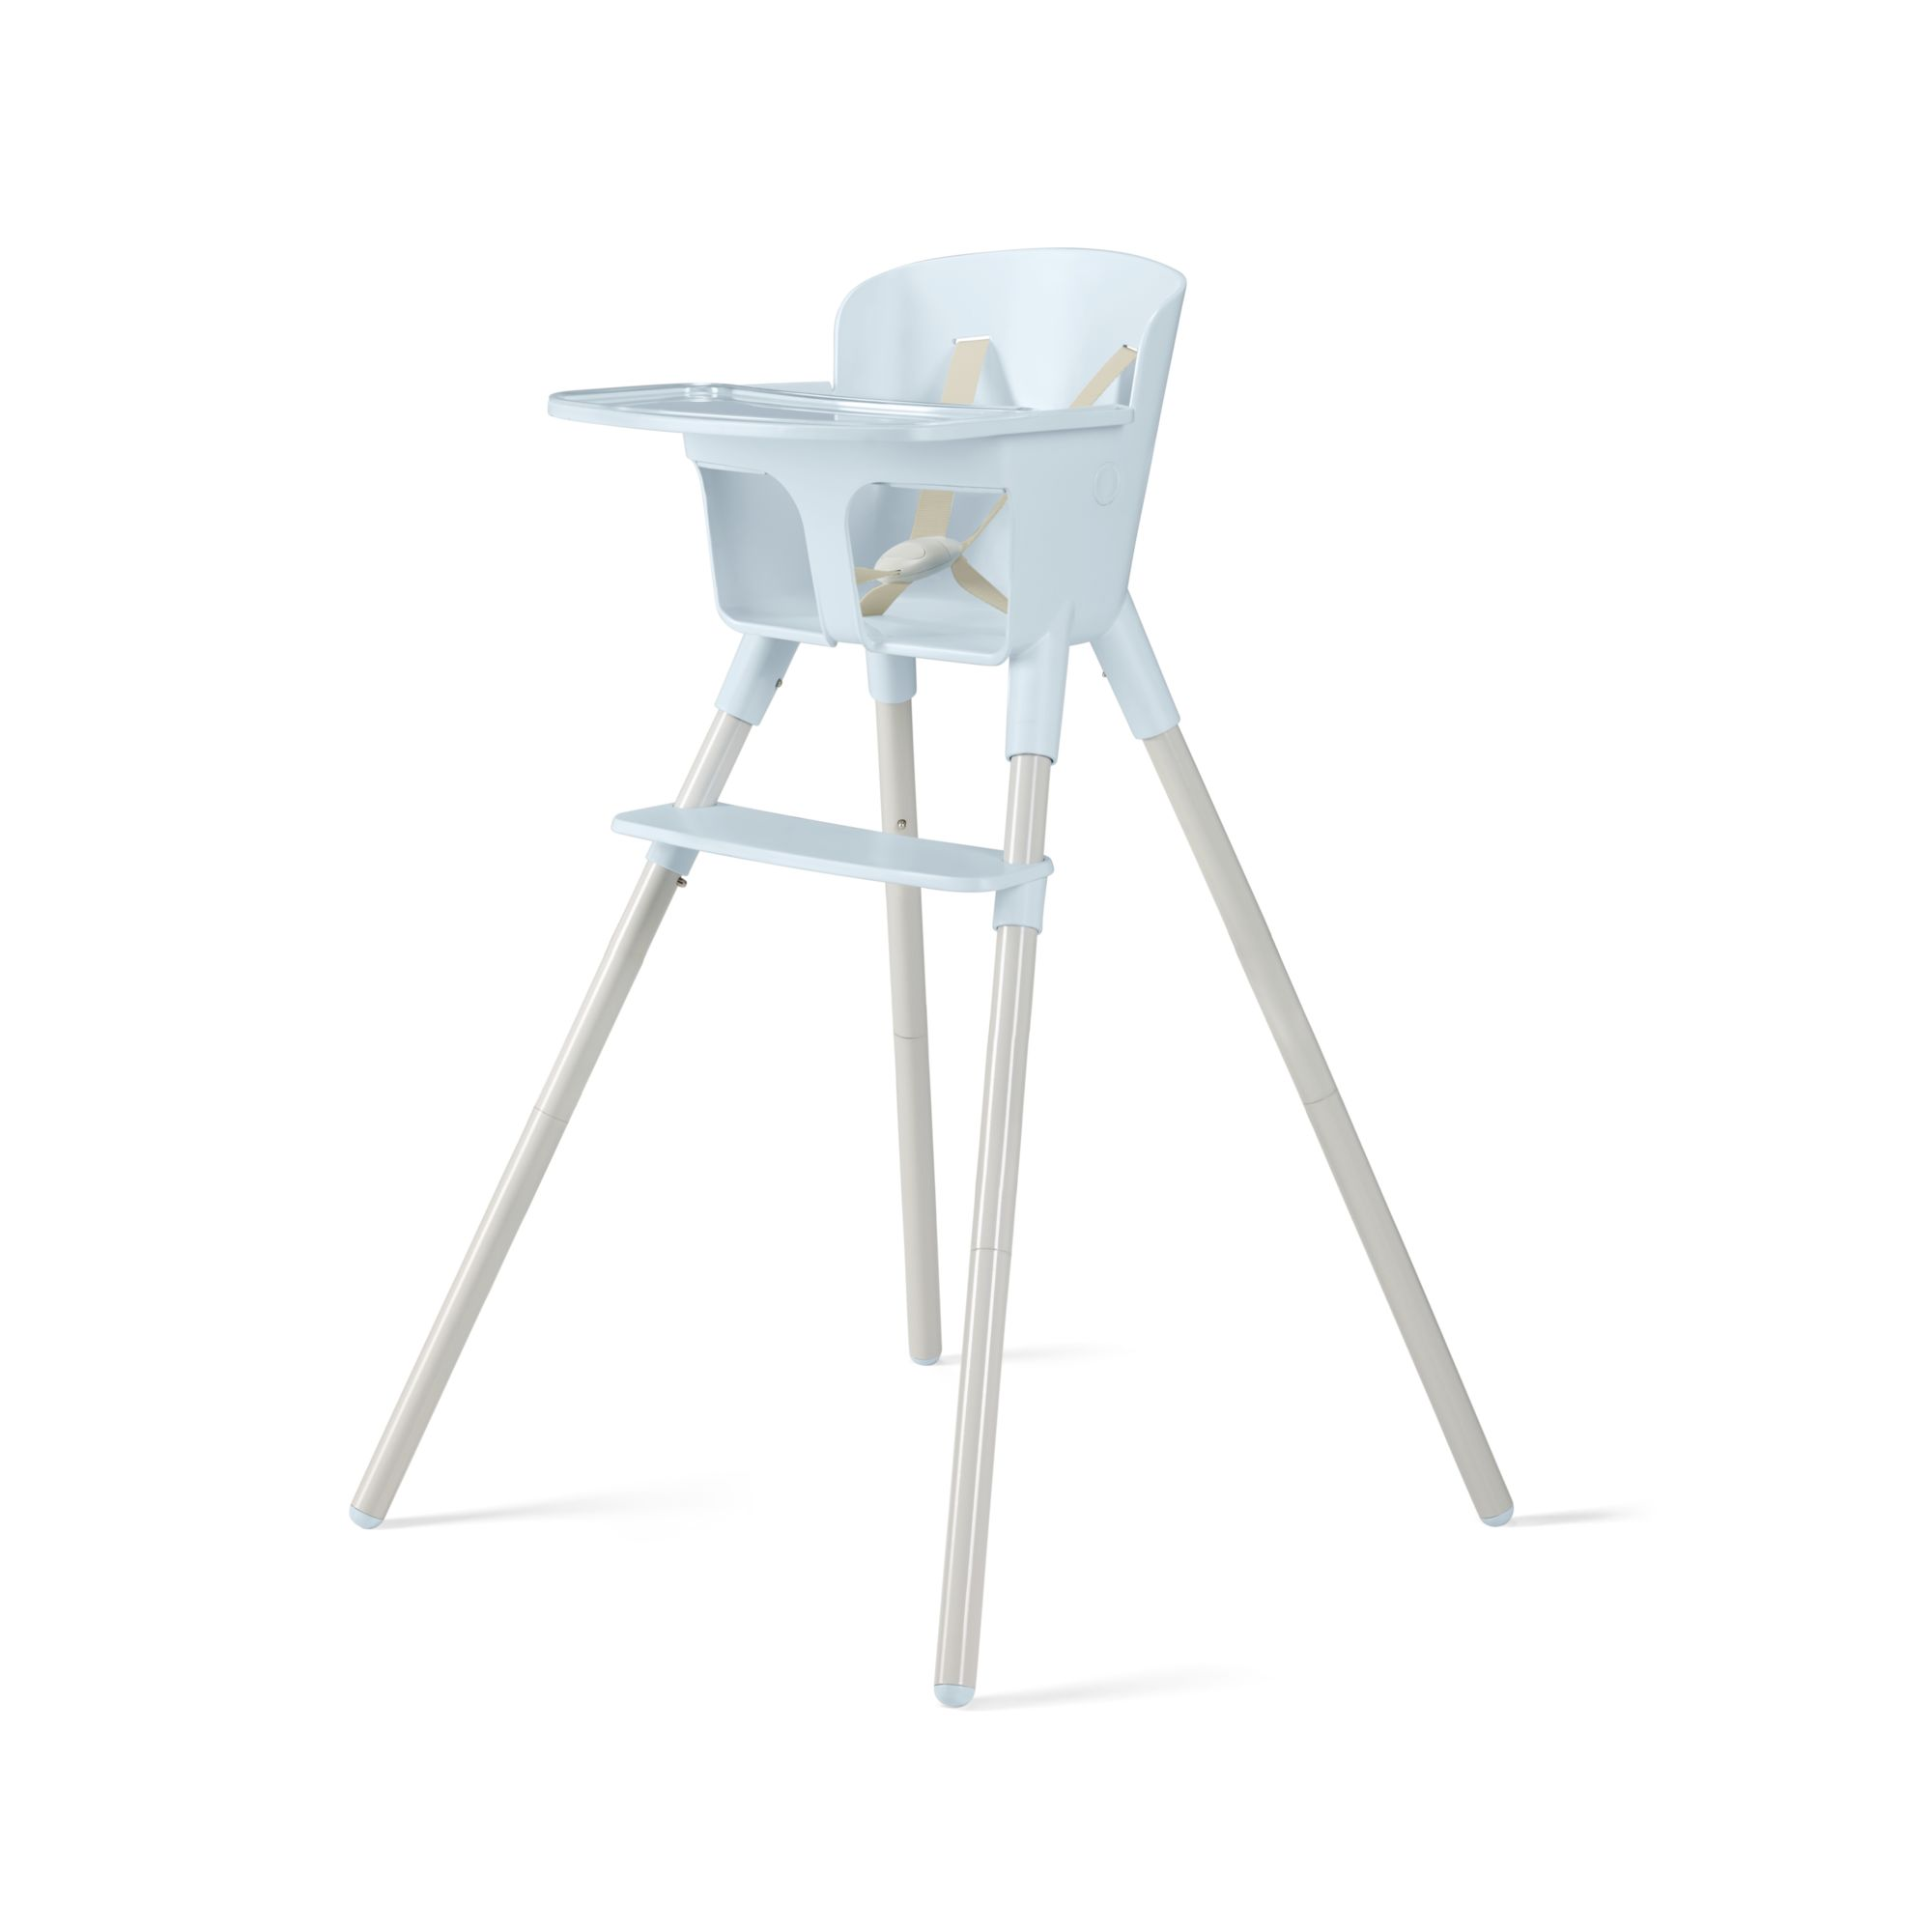 CBX Chaise Haute LUYU XL light blue